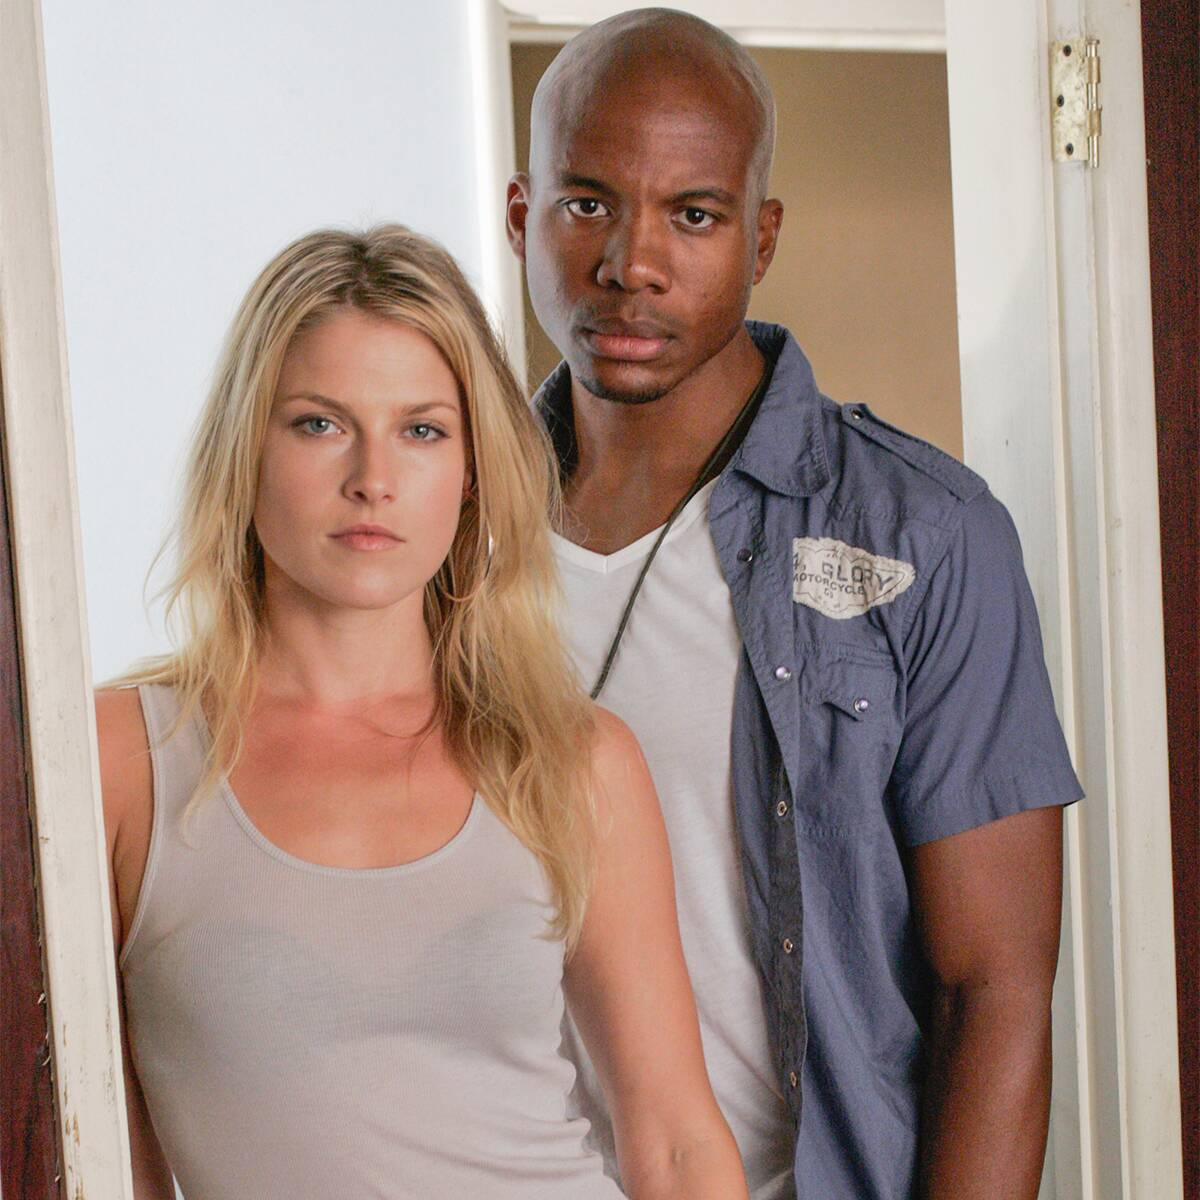 Leonard Roberts Blames Racism and Ali Larter Conflict for His Heroes Firing